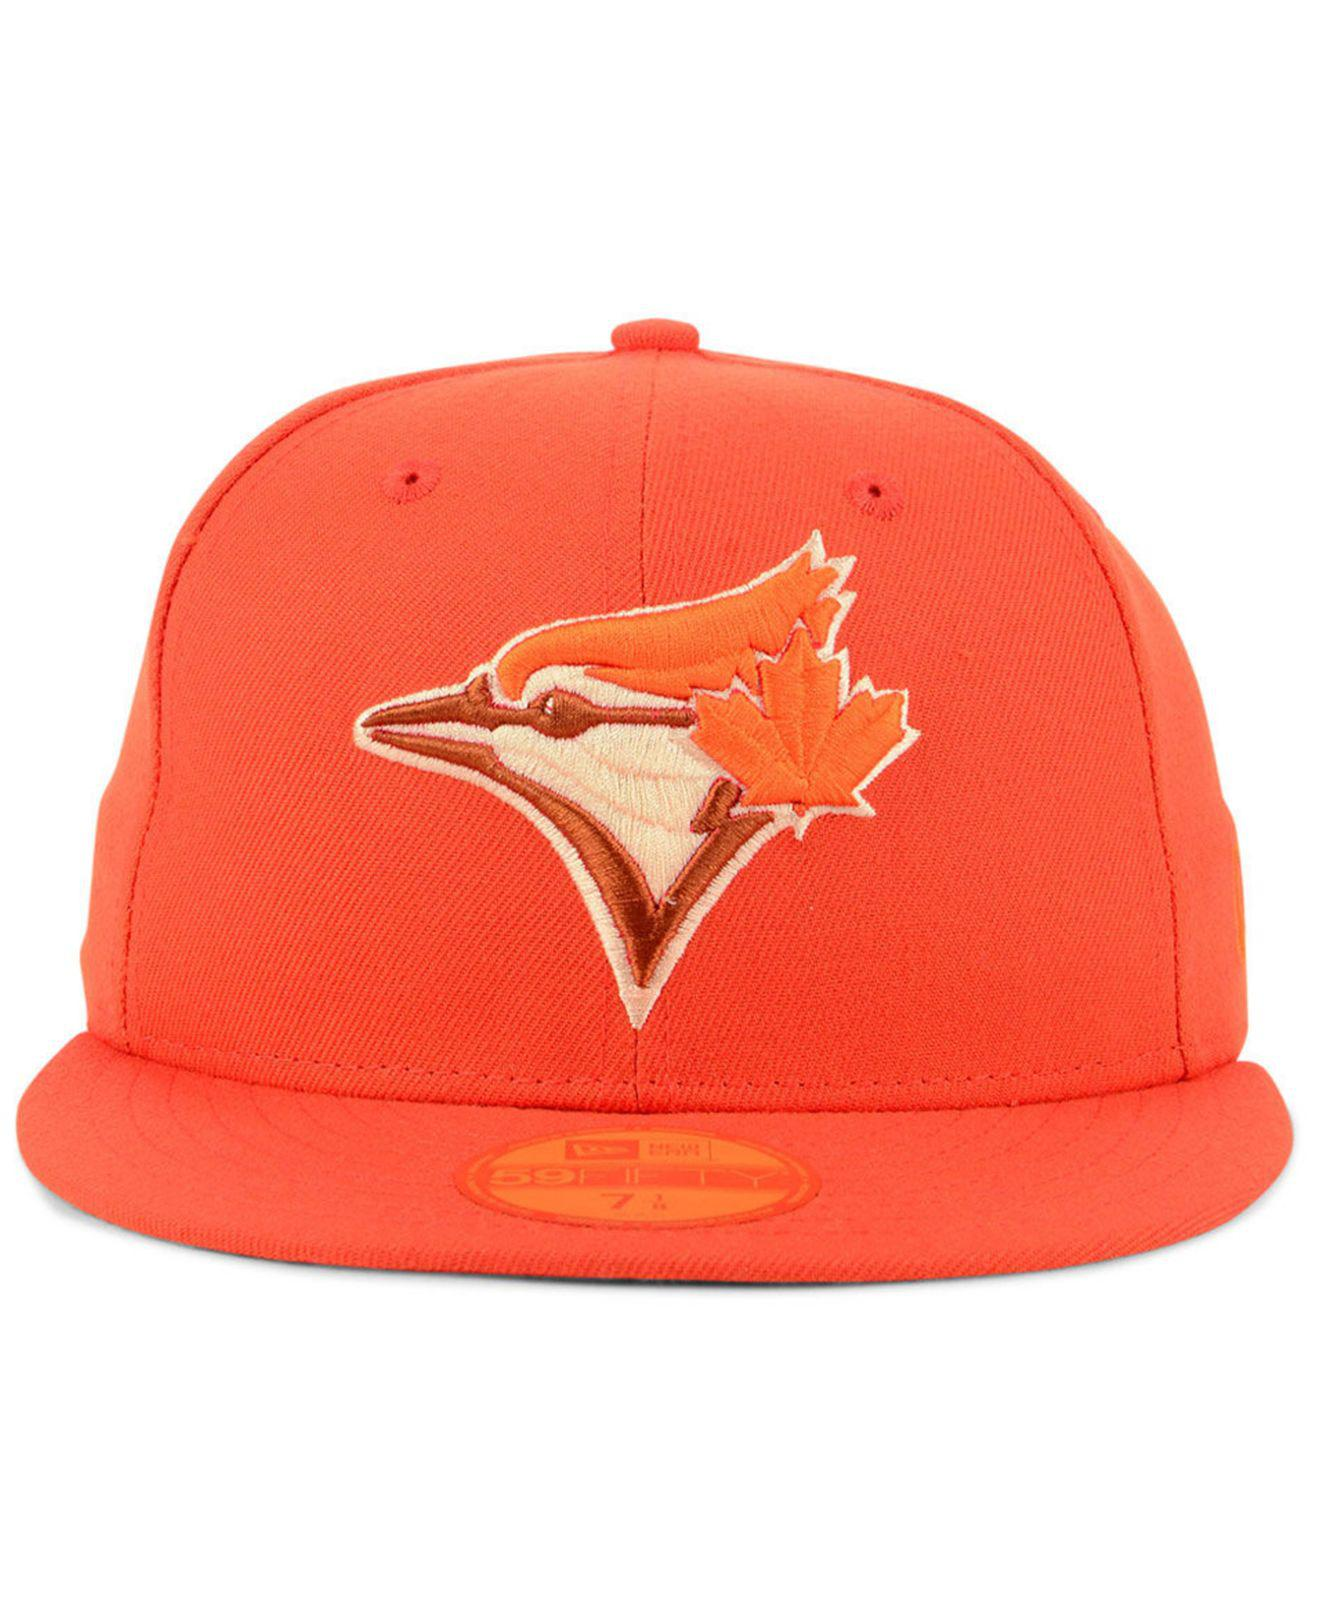 e47c36a840e Lyst - KTZ Toronto Blue Jays Prism Color Pack 59fifty Fitted Cap in Orange  for Men